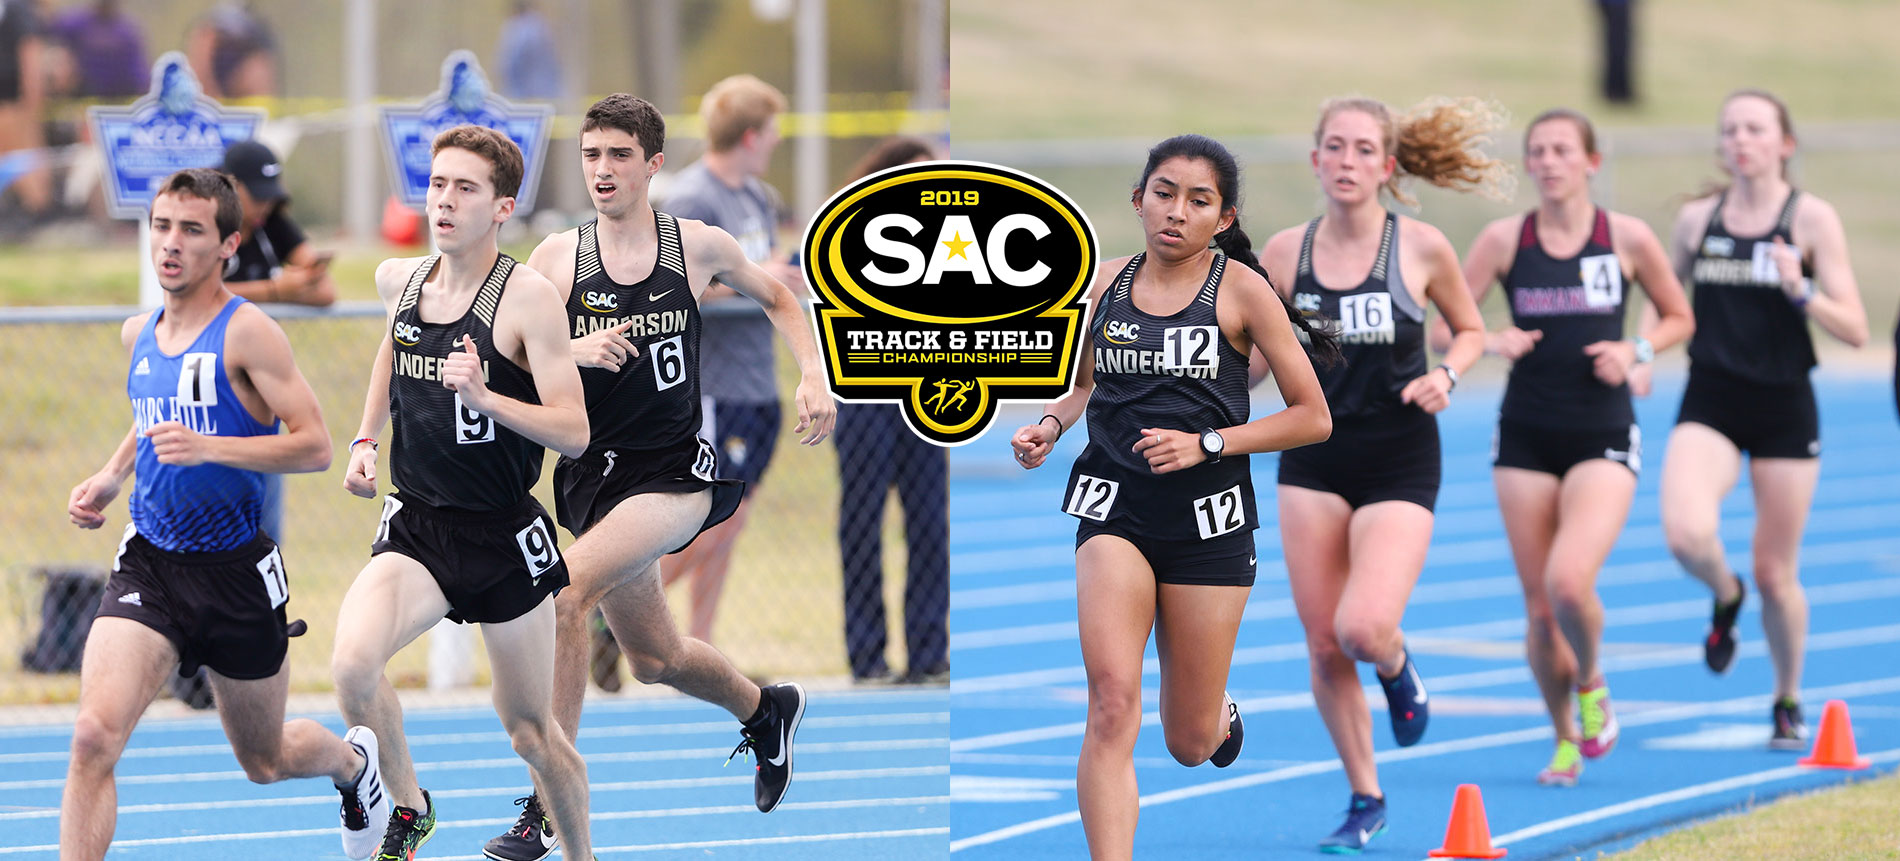 Women's Track and Field Finishes Sixth at SAC Track and Field Championships; Trojan Men Finish Ninth